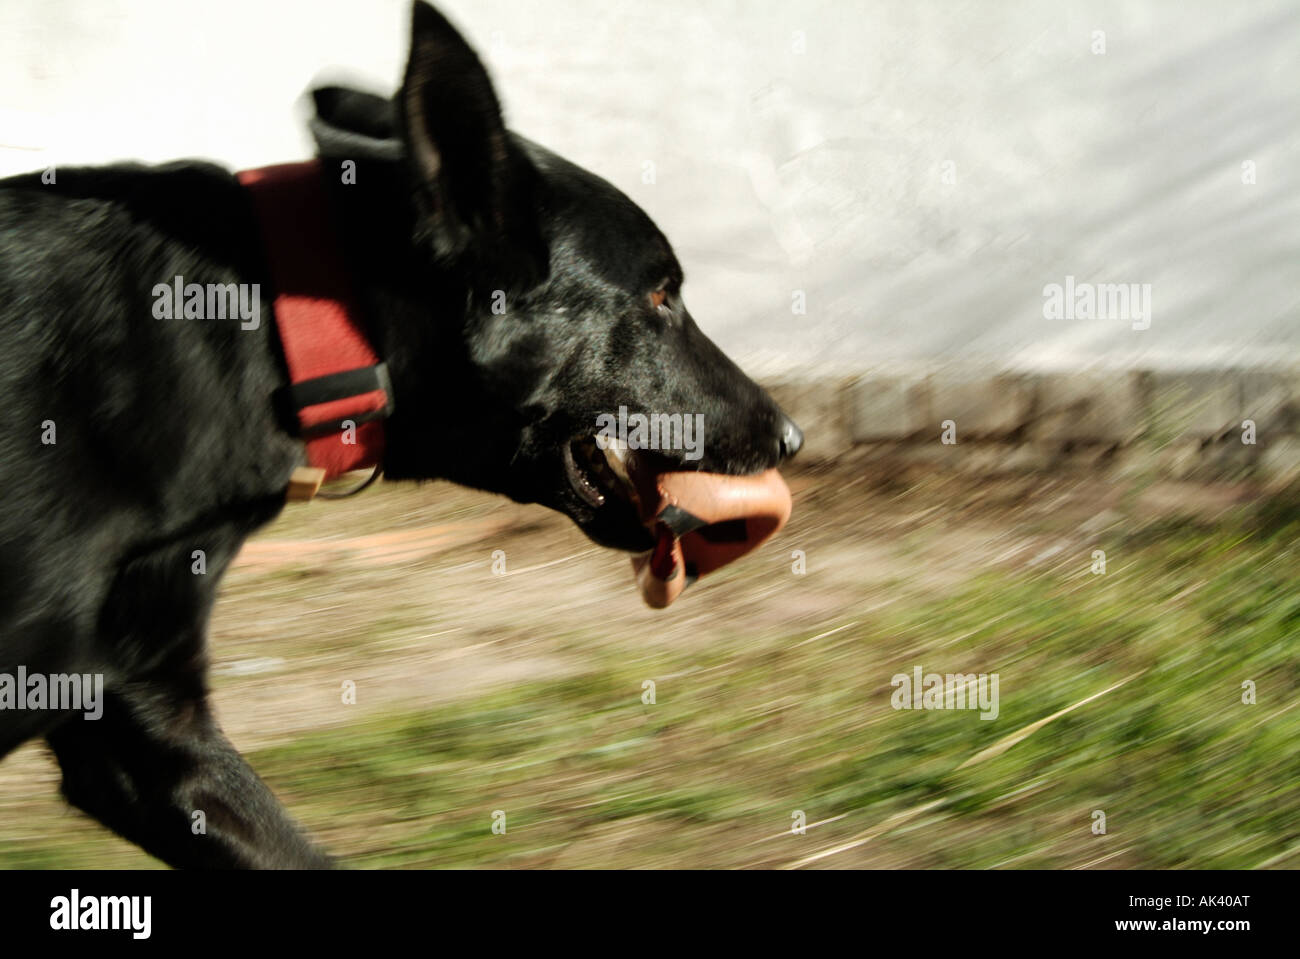 Dog running with a ball in its mouth - Stock Image